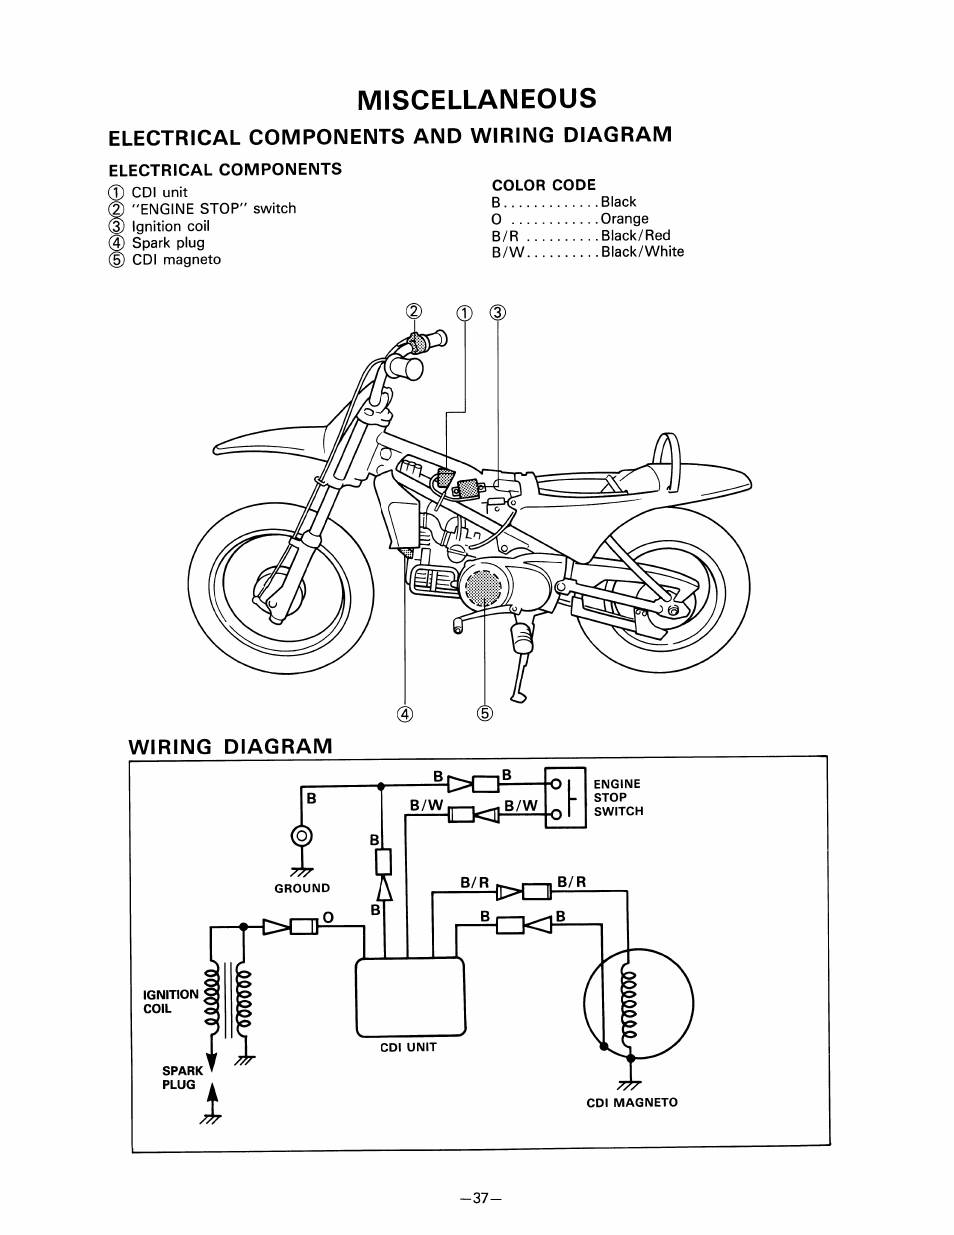 Yamaha Cdi Box Wiring Diagram For Unit Colored Image Not